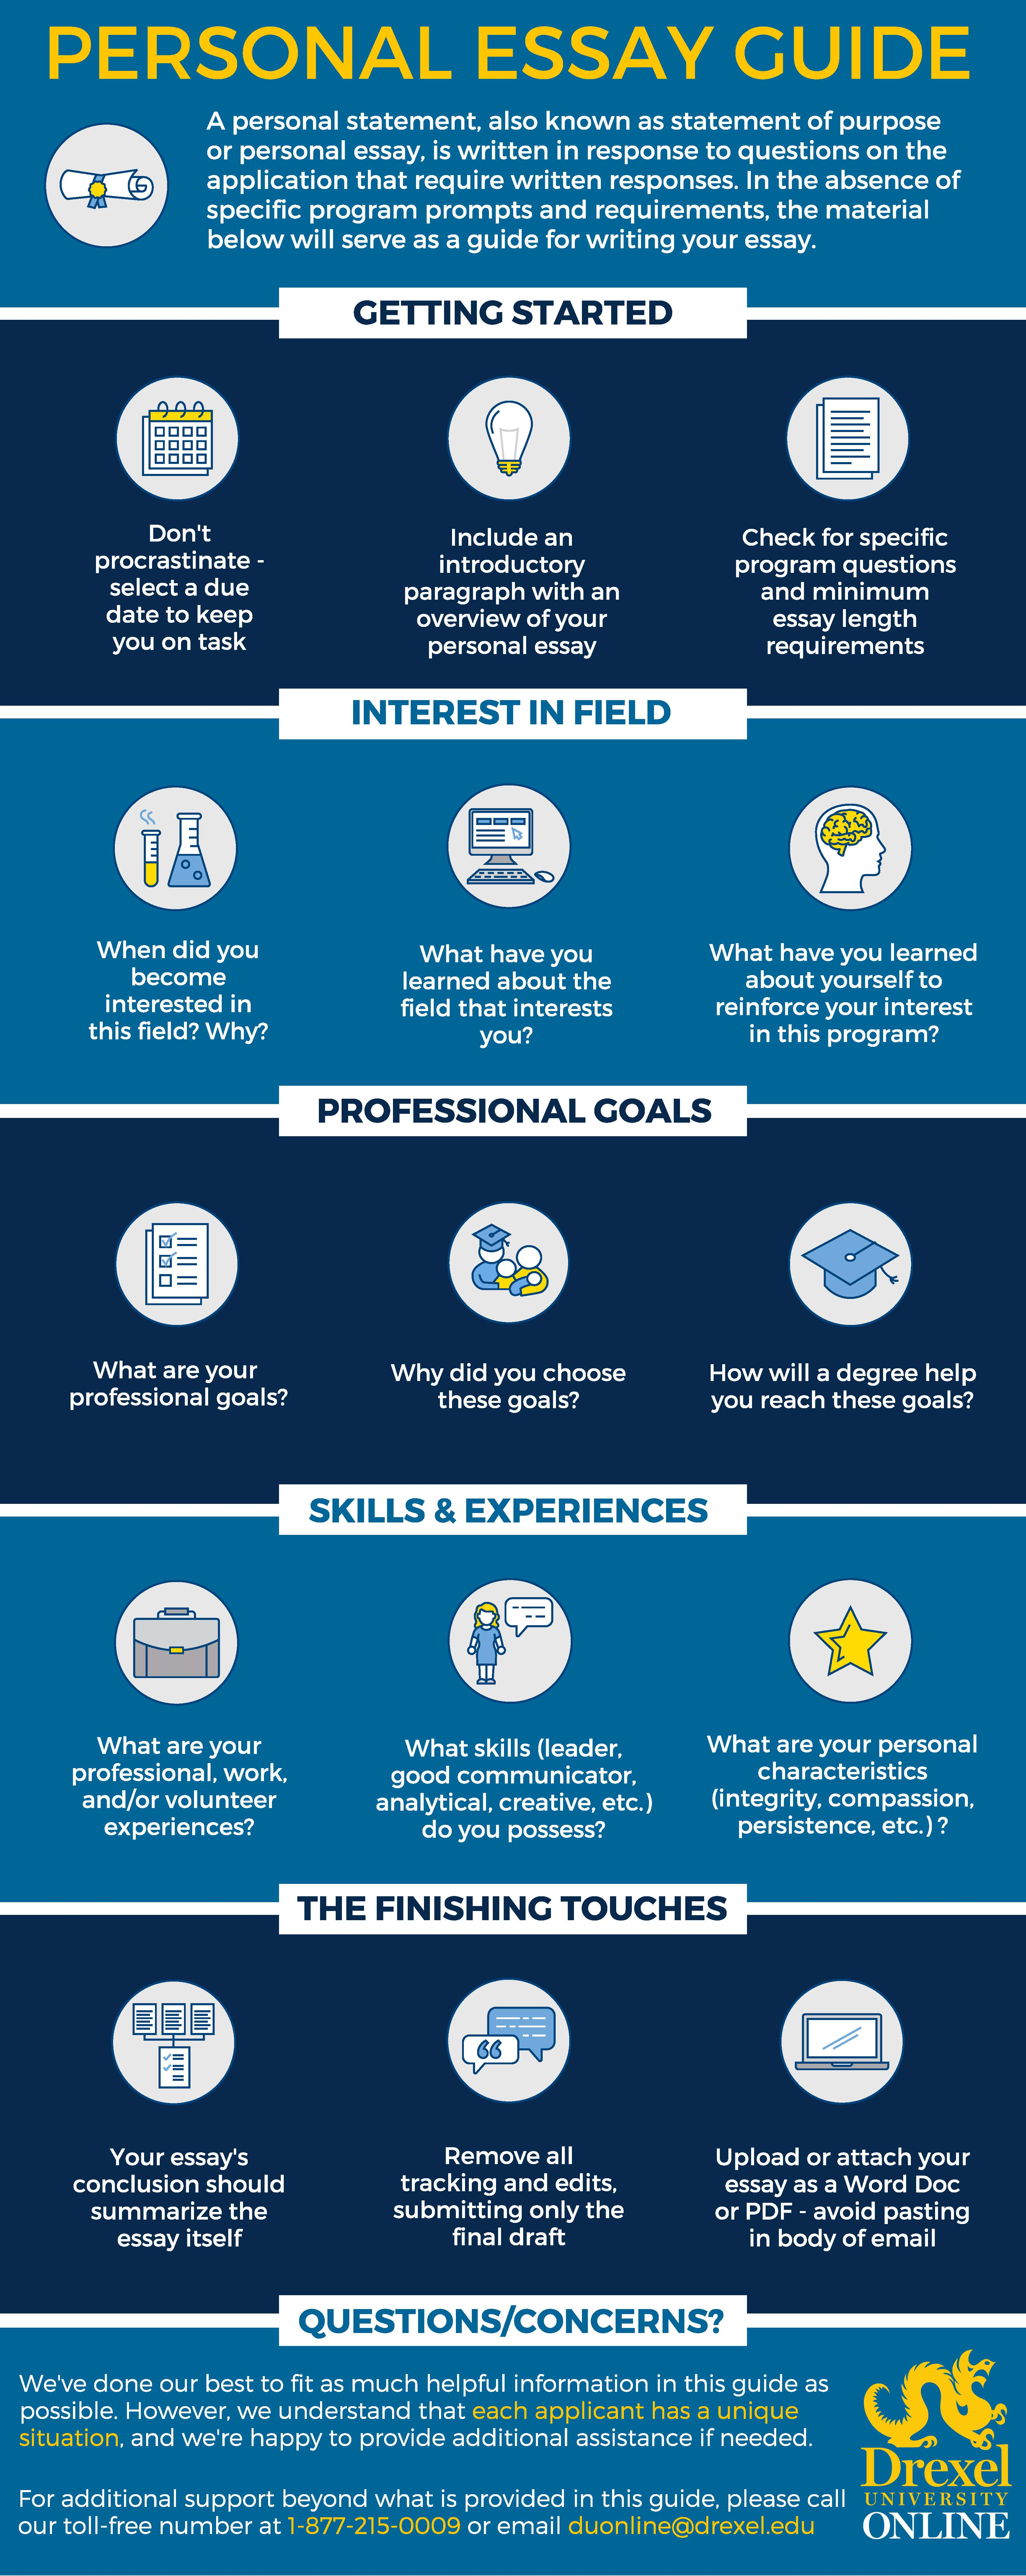 Infographic outlining tips for the perfect personal essay. Created by Drexel University Online.